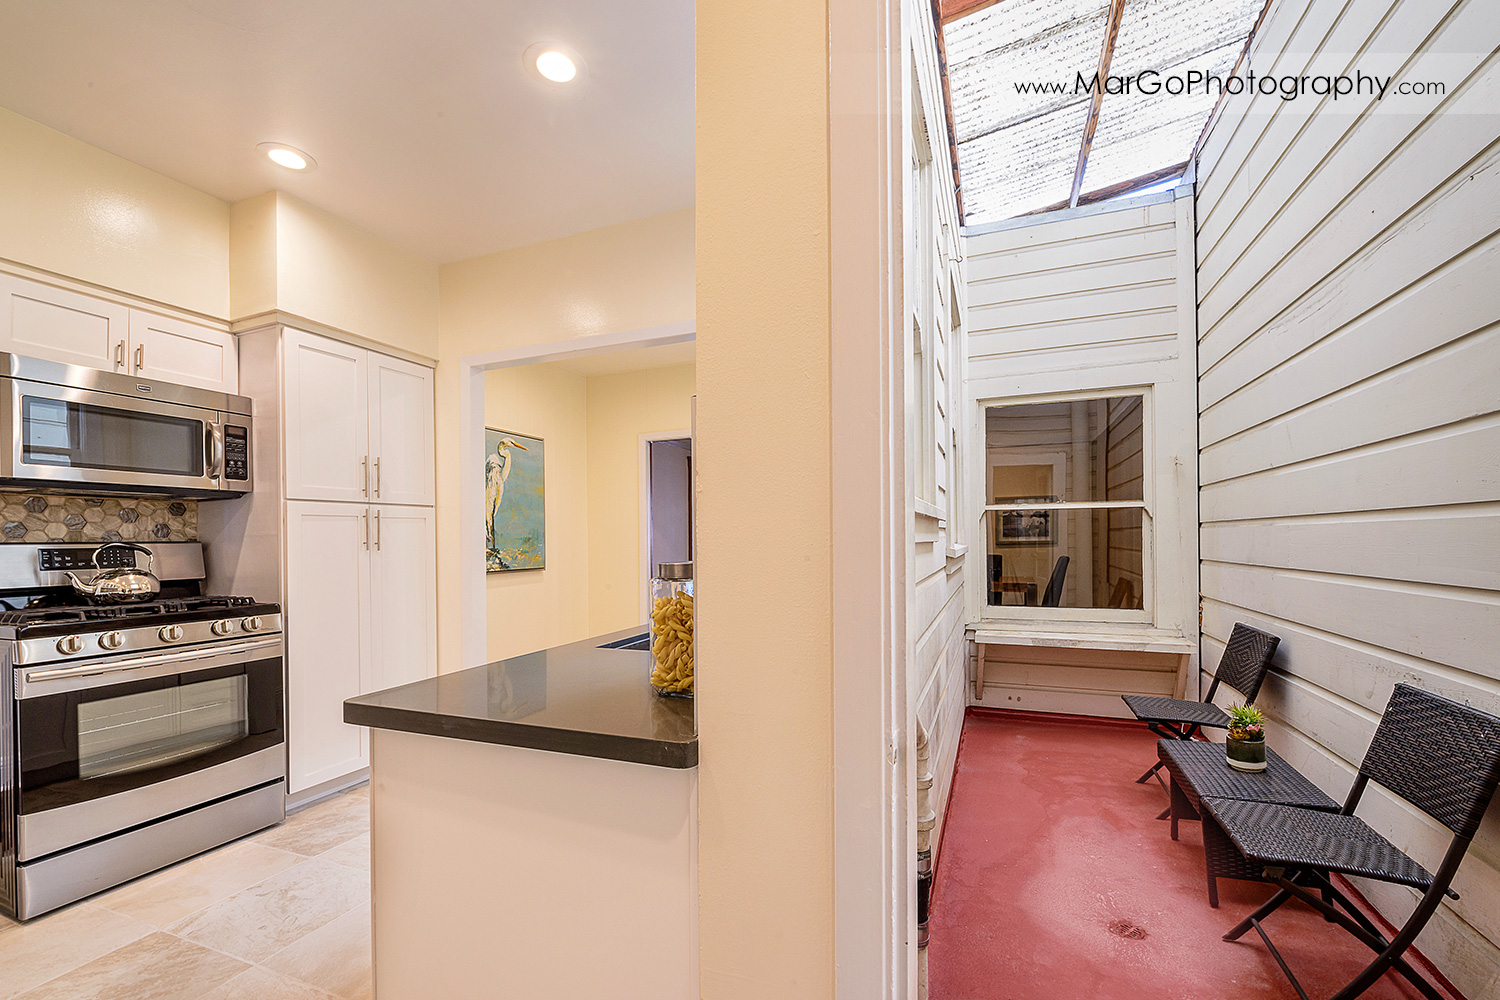 San Francisco house kitchen with white cabinets and inner patio / balcony - real estate photography